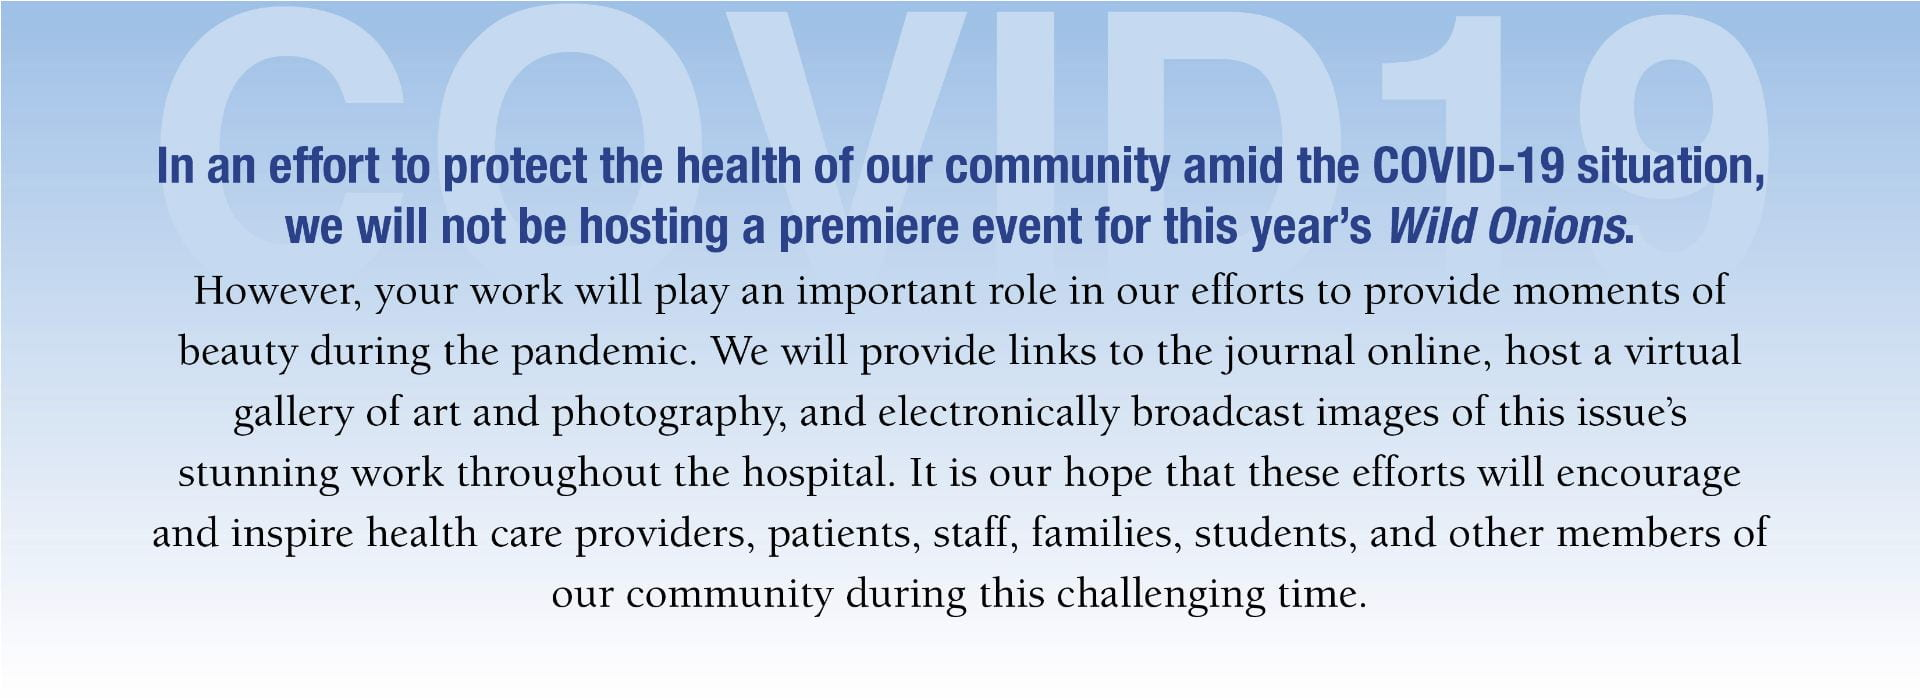 In an effort to protect the health of our community amid the COVID-19 situation, we will not be hosting a premiere event for this year's Wild Onions. However, your work will play an important role in our efforts to provide moments of beauty during the pandemic. We will provide links to the journal online, host a virtual gallery of art and photography, and electronically broadcast images of this issue's stunning work throughout the hospital. It is our hope that these efforts will encourage and inspire health care providers, patients, staff, families, students, and other members of our community during this challenging time.